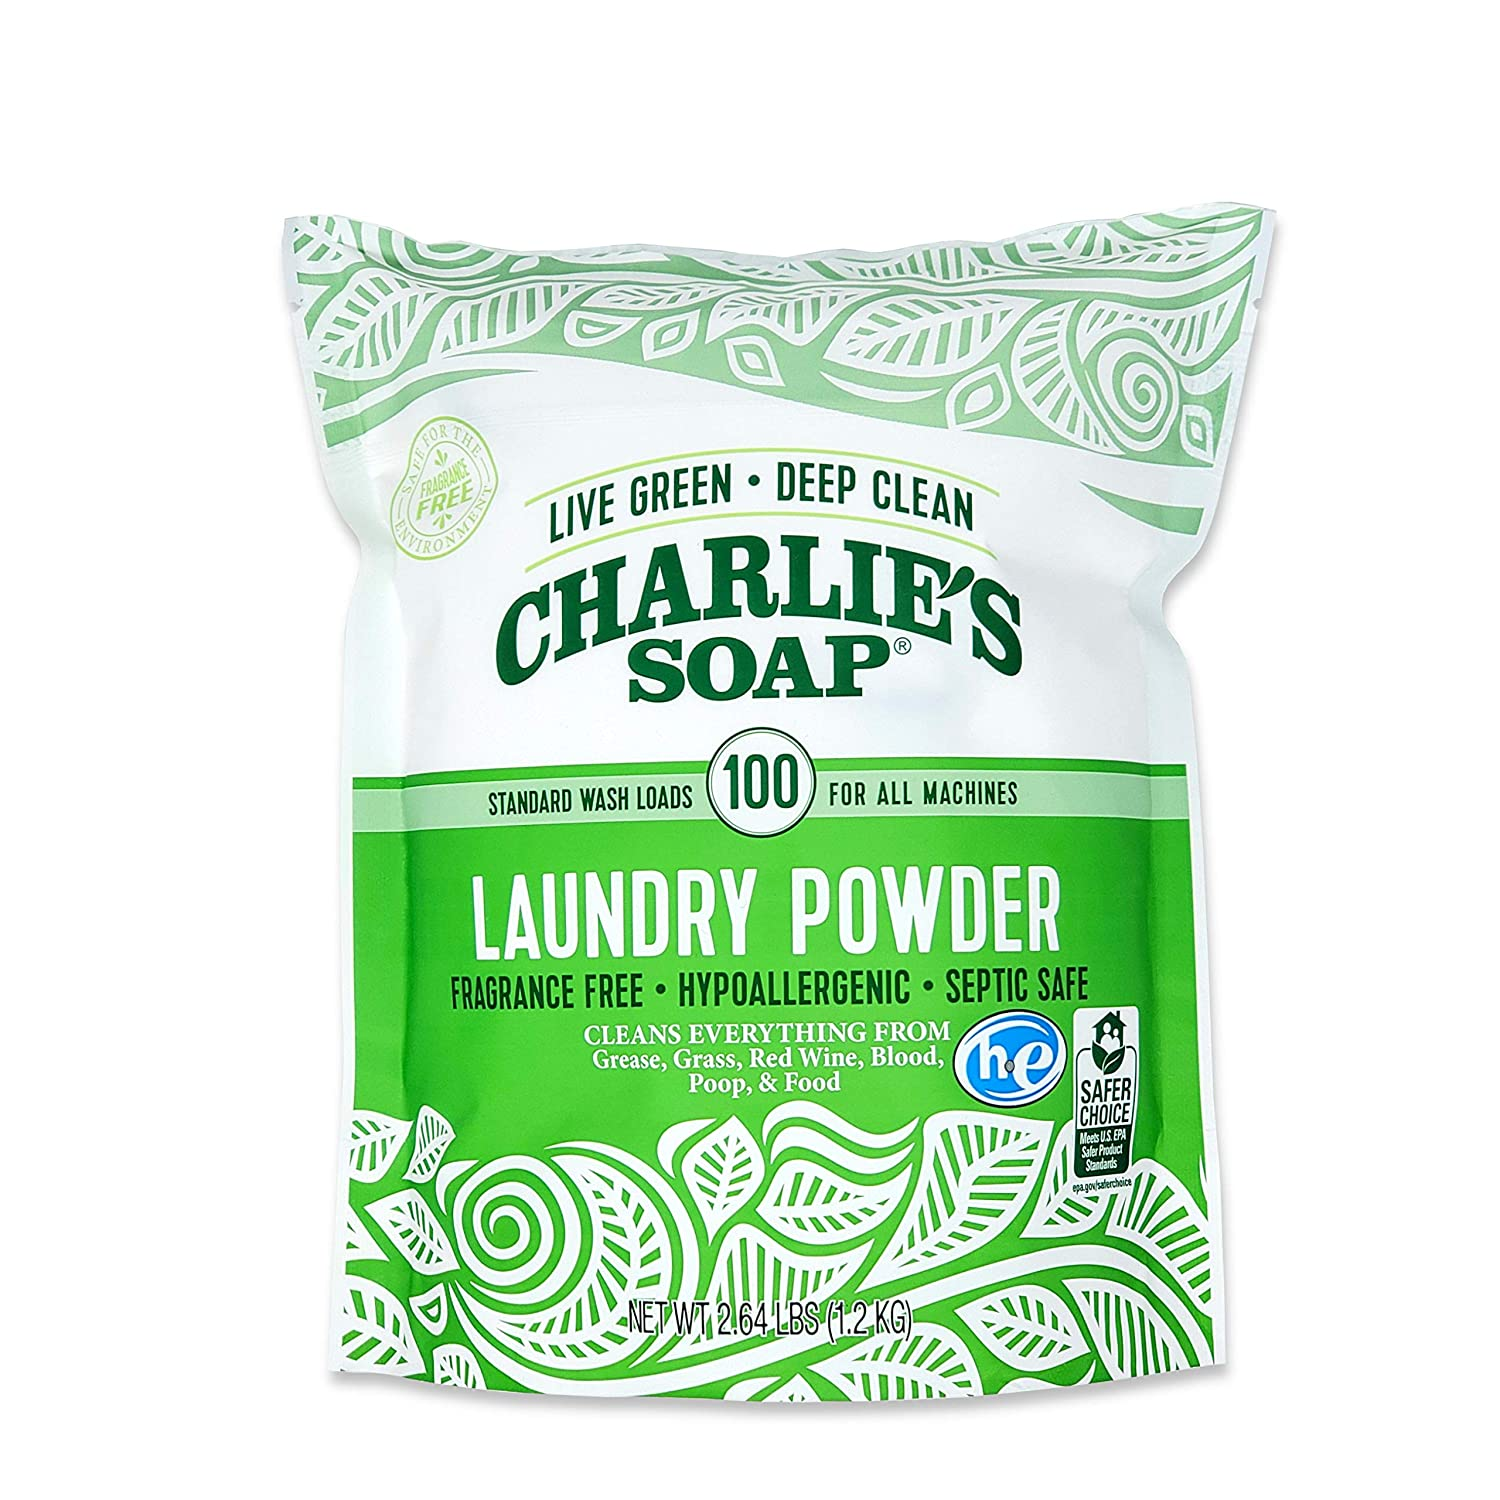 Did you know that laundry packs have animal fat in them? I couldn't believe it! When I began using powder detergent, I no longer had problems with a smelly washer. This Charlie's Soap option is also fragrance free and biodegradable. | For Animals For Earth